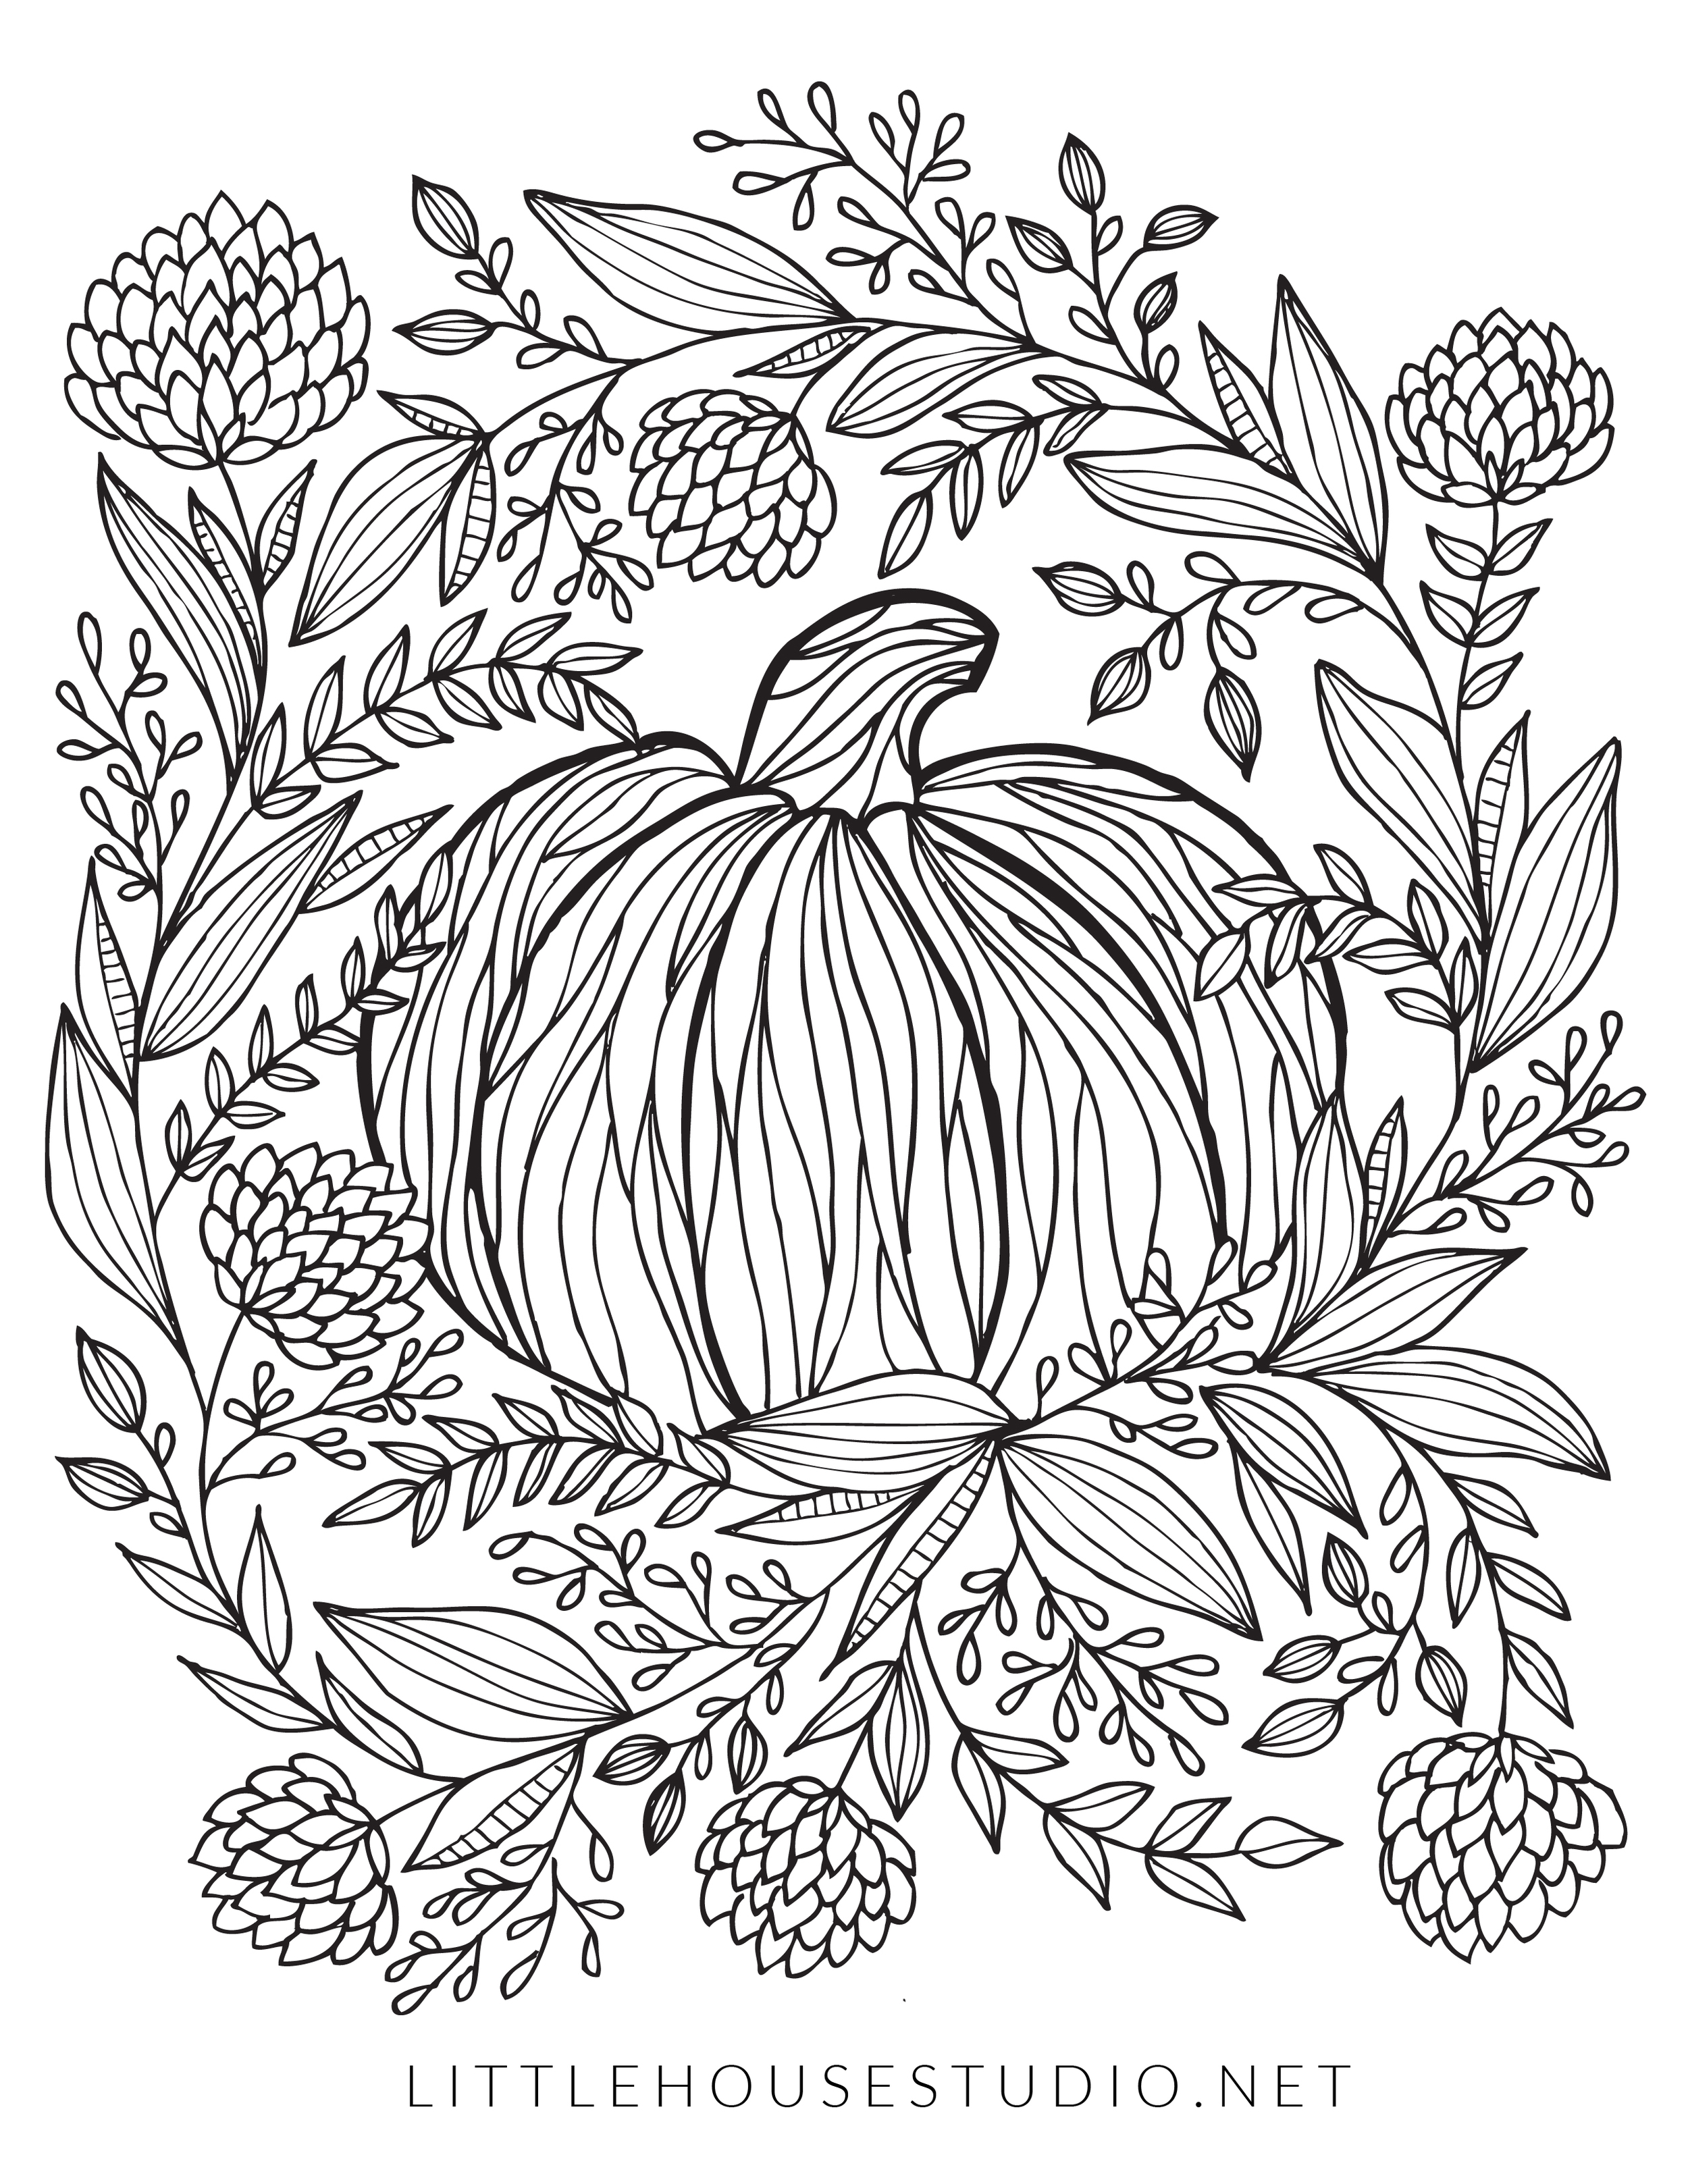 Click to download the Free PDF Pumpkin Coloring Page Printable